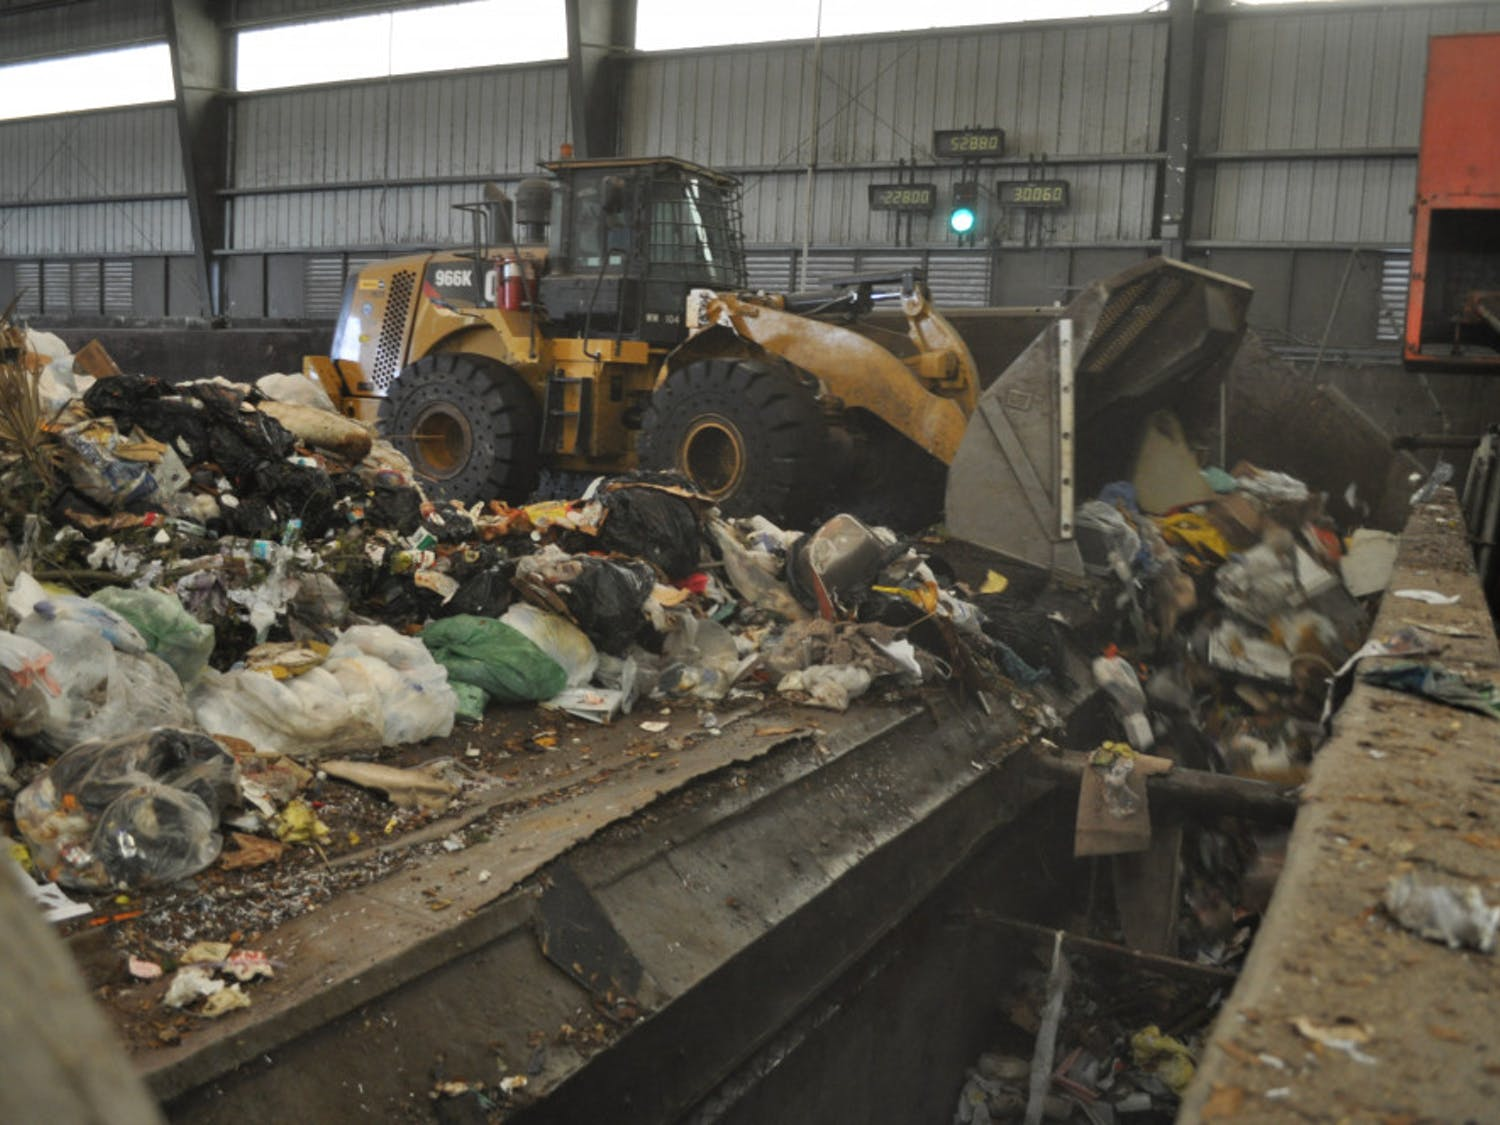 Photo caption: Waste gets pushed into trailers at Leveda Brown Environmental Park and will be transferred to New River landfill in Raiford.